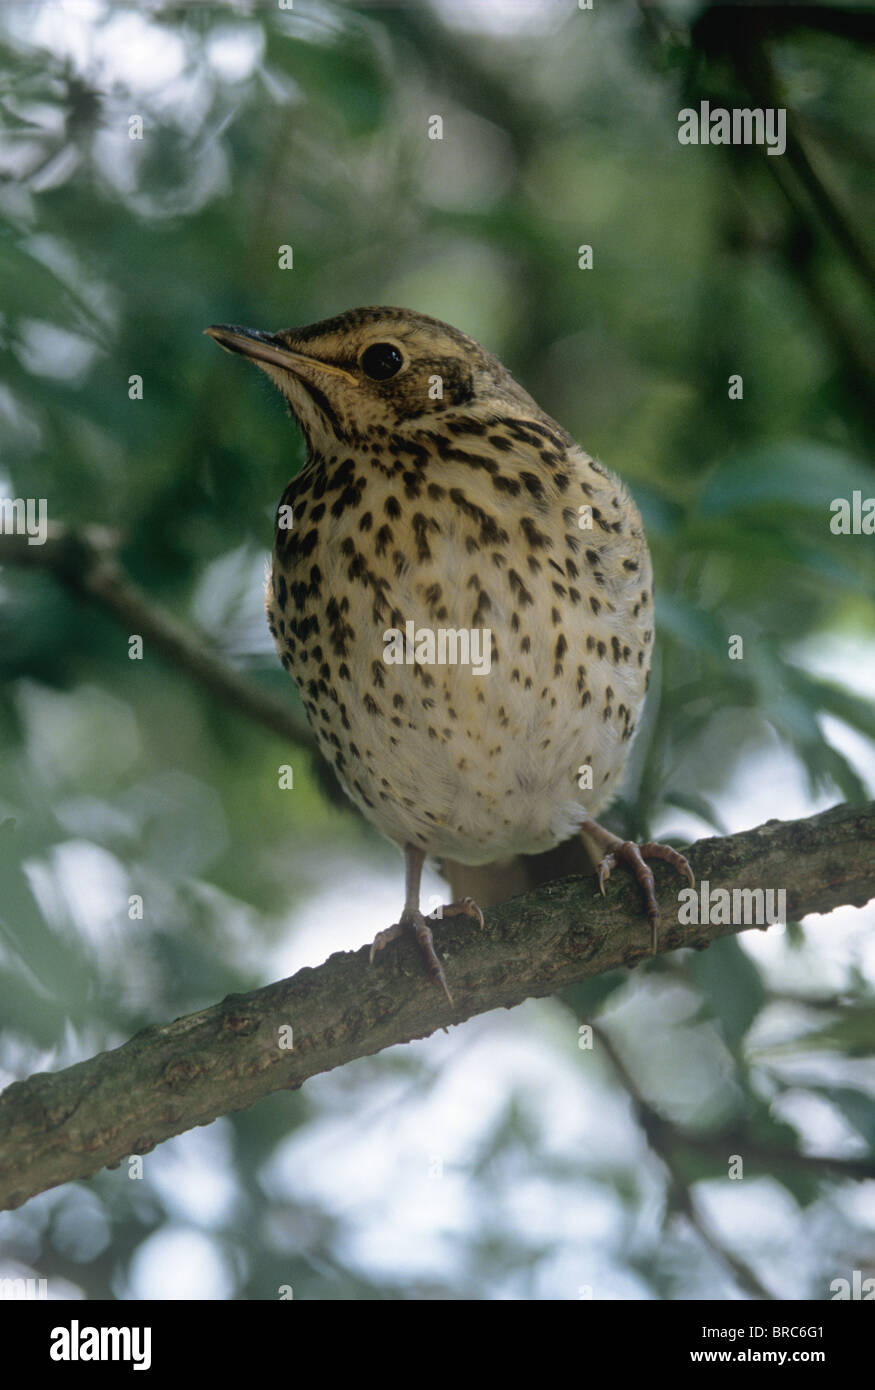 Song thrush (Turdus philomelos) on the branch of a tree - Stock Image